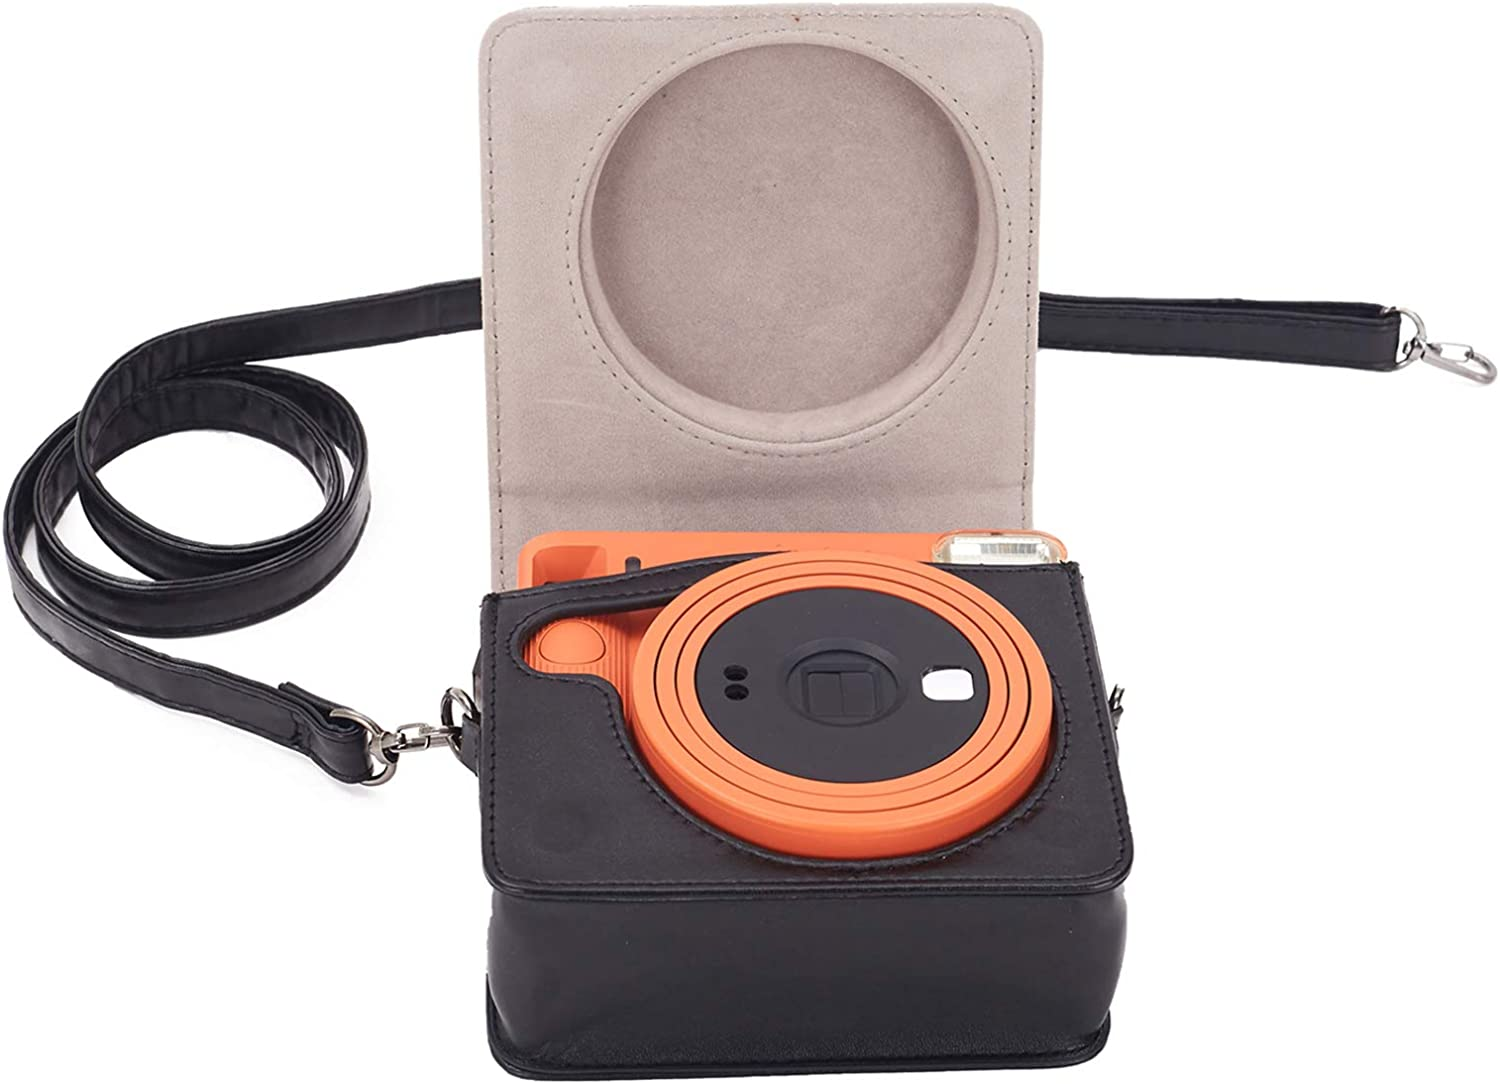 Leebotree Instant Camera Protective Case Compatible with Instax SQUARE SQ1 Instant Camera Black Soft PU Leather Bag with Removable//Adjustable Shoulder Strap